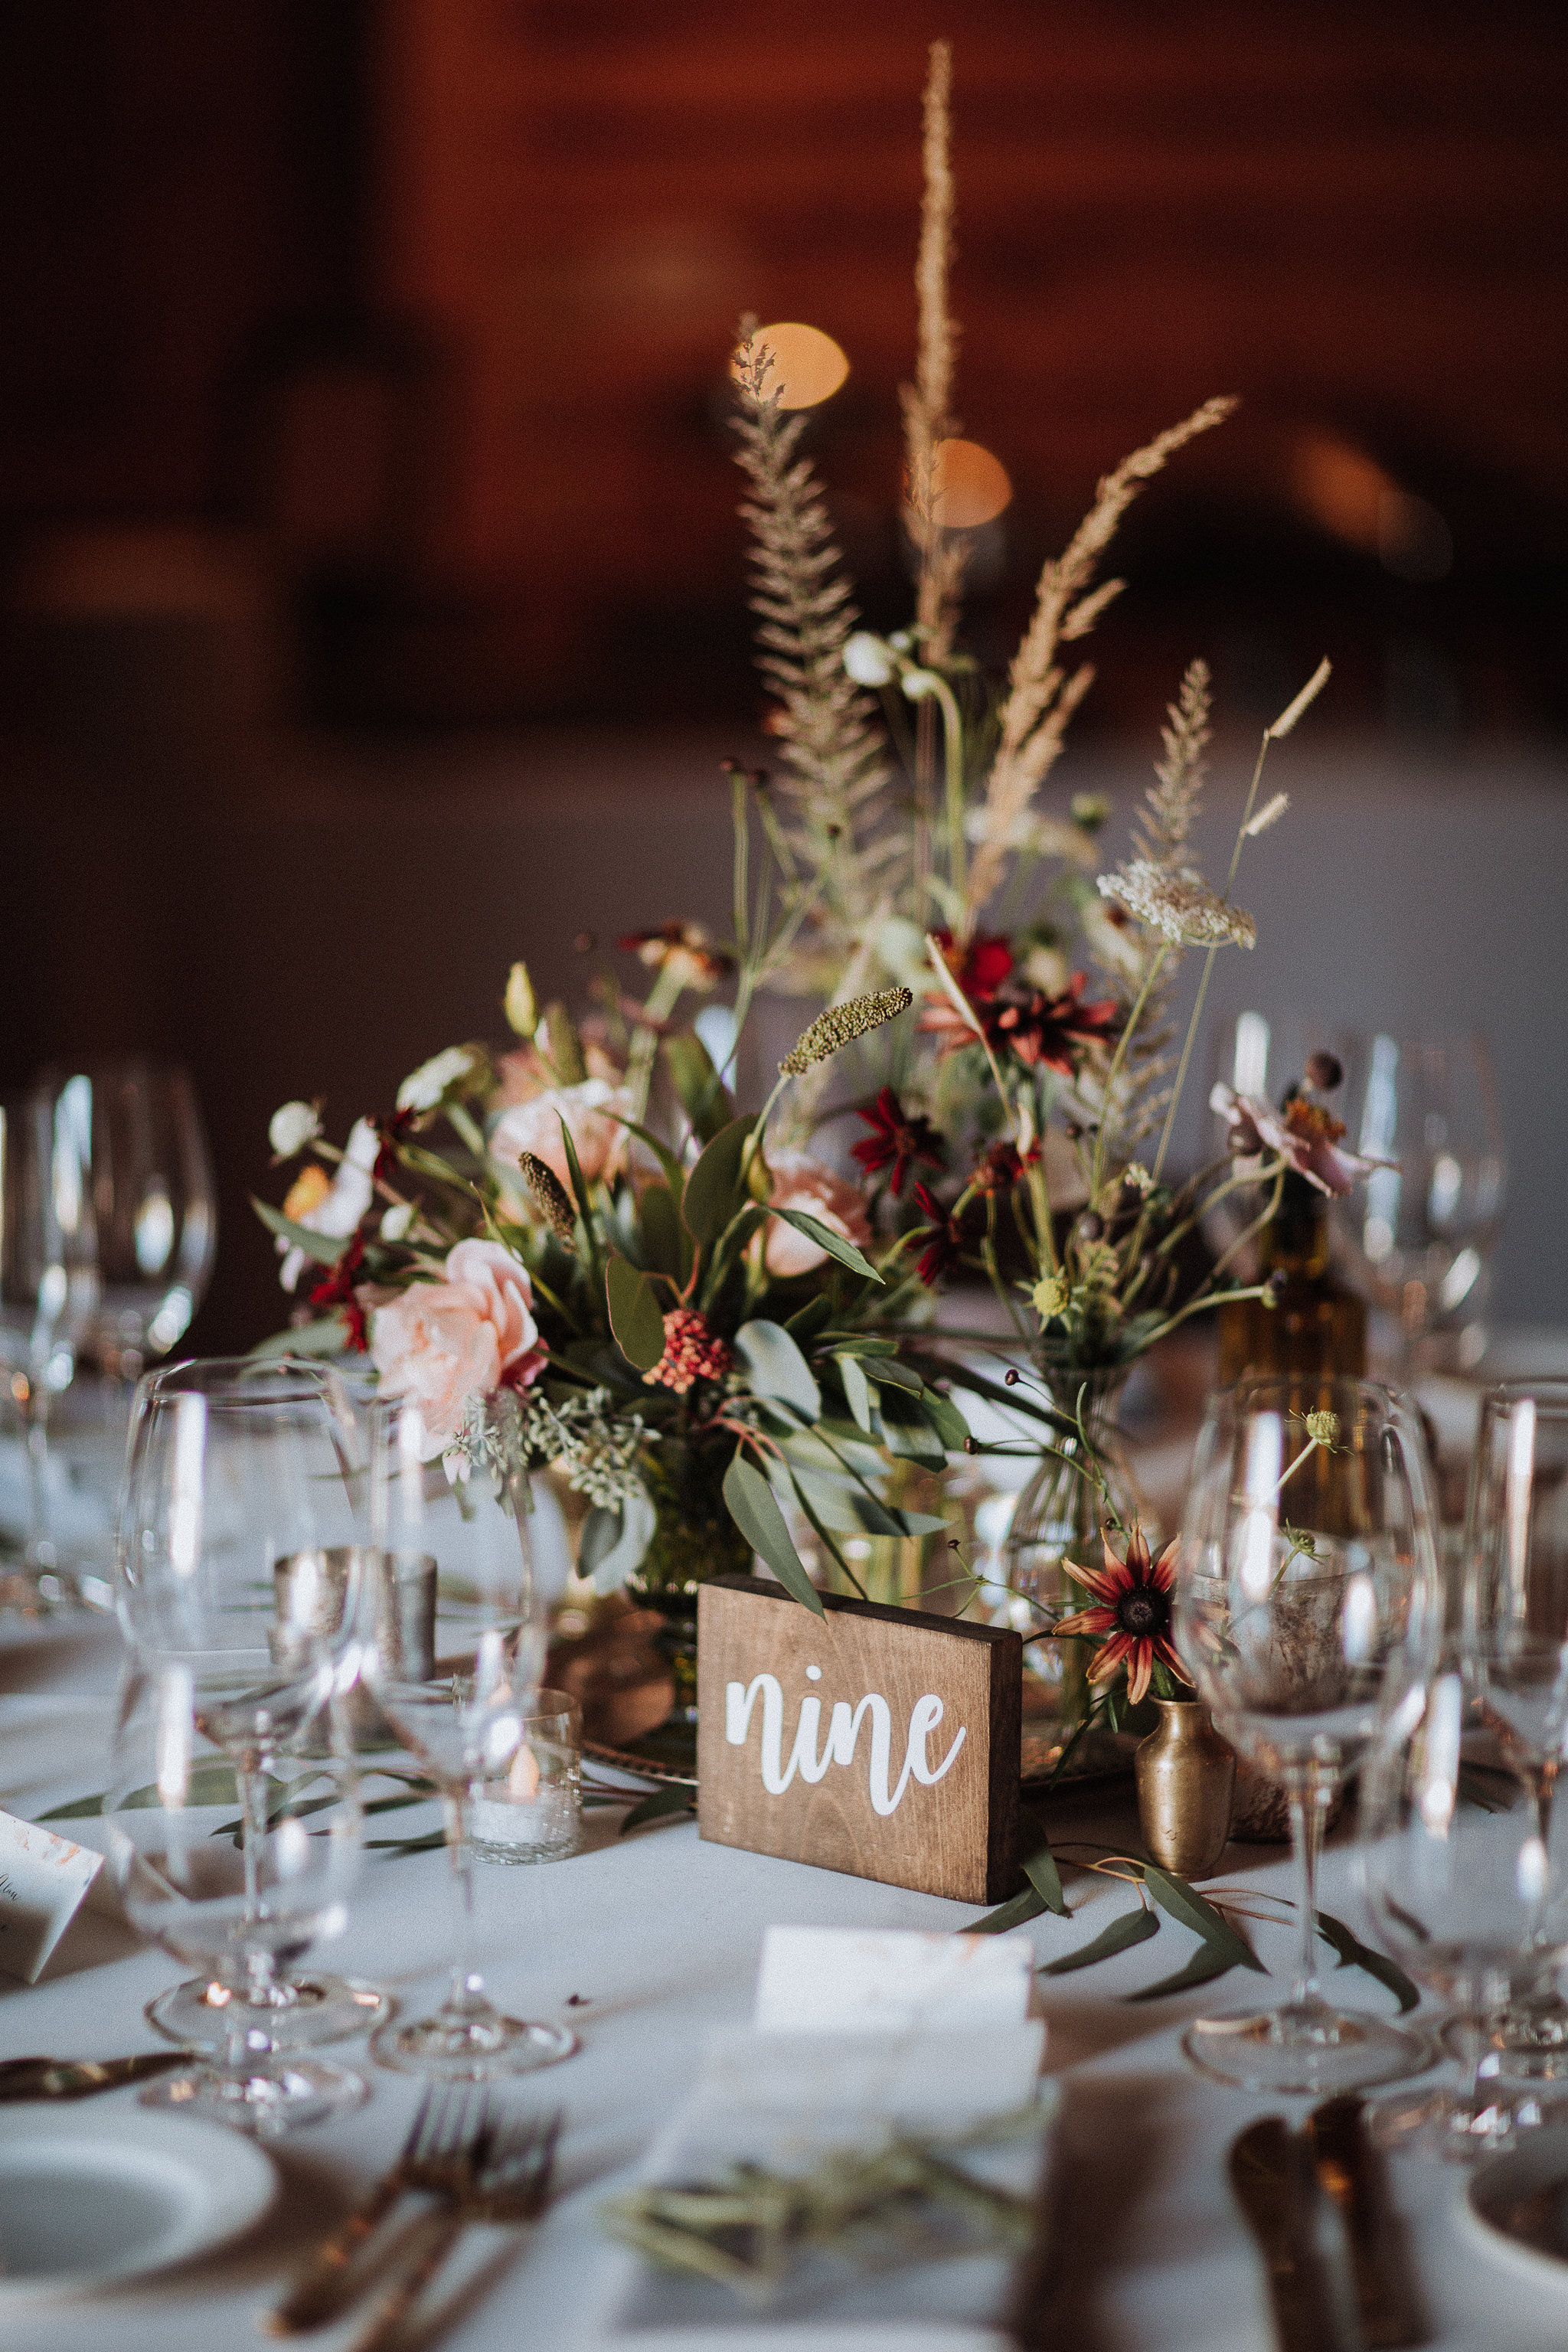 Centerpiece vignette with vintage brass bud vases and autumn flowers by Venn Floral at Olympia's Valley Estate with Ooh La La Weddings and Events photographed by Gretchen Gause.